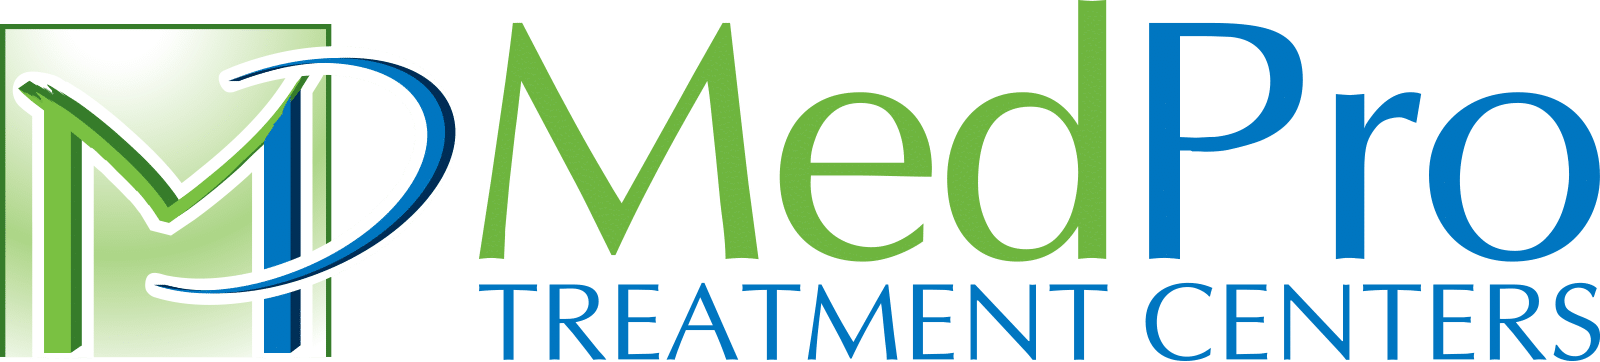 MedPro Treatment Centers Retina Logo